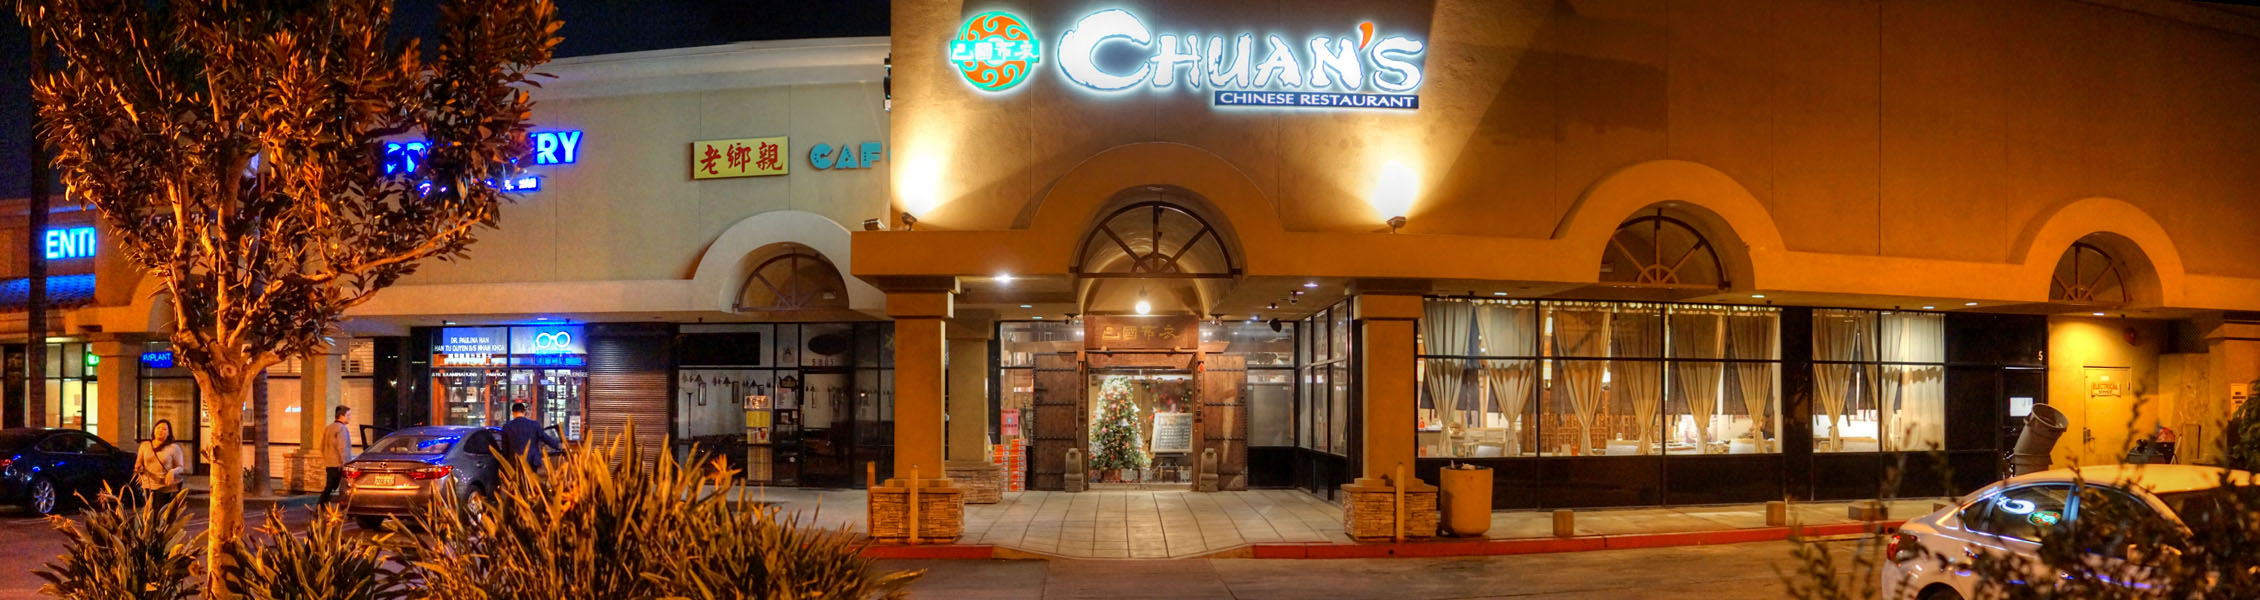 Chuan S Chinese Restaurant Temple City Ca